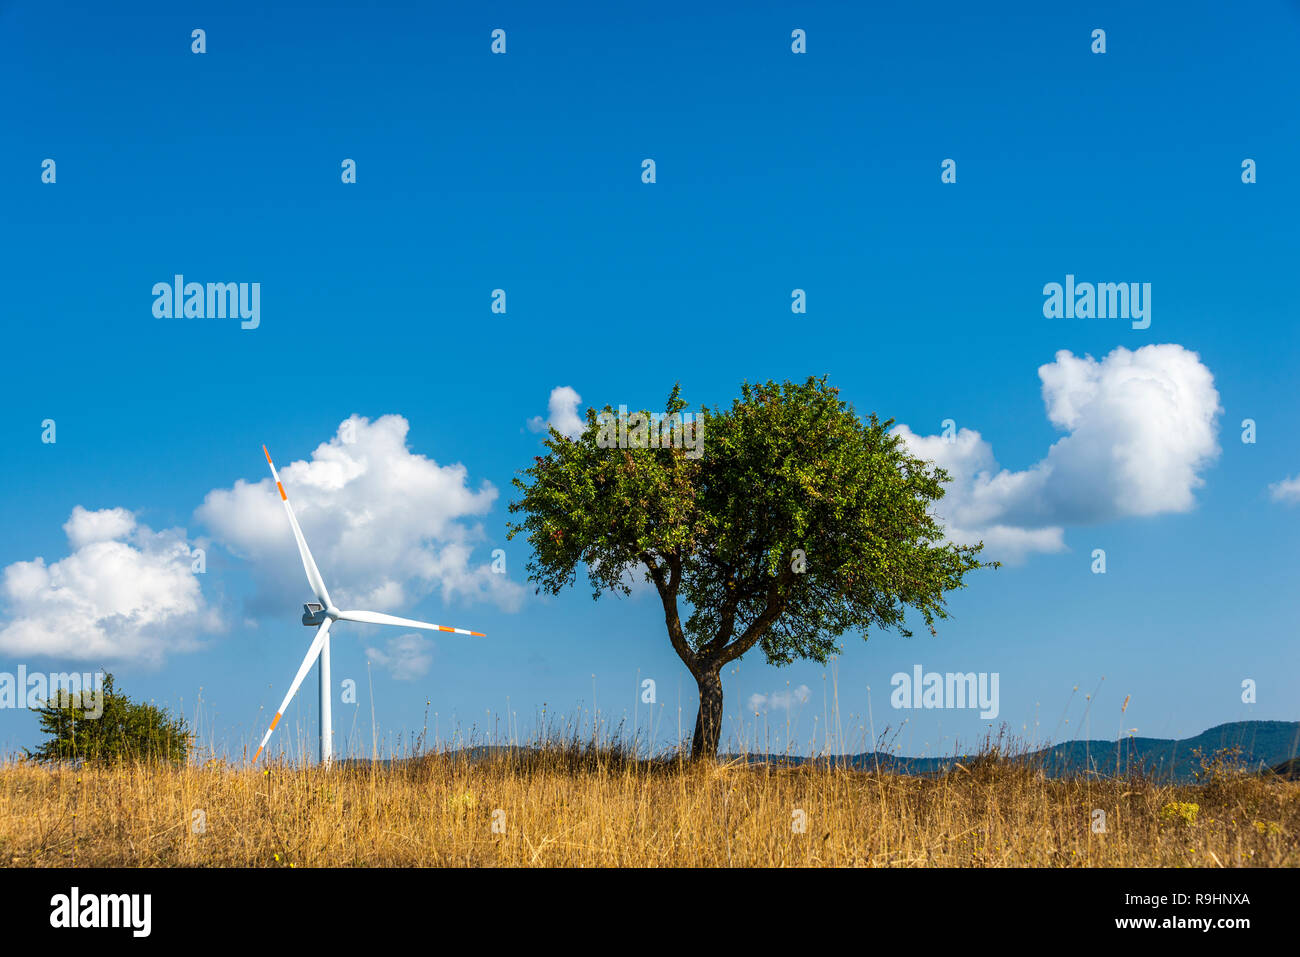 countryside landscapes in val d'agri, basilicata Stock Photo